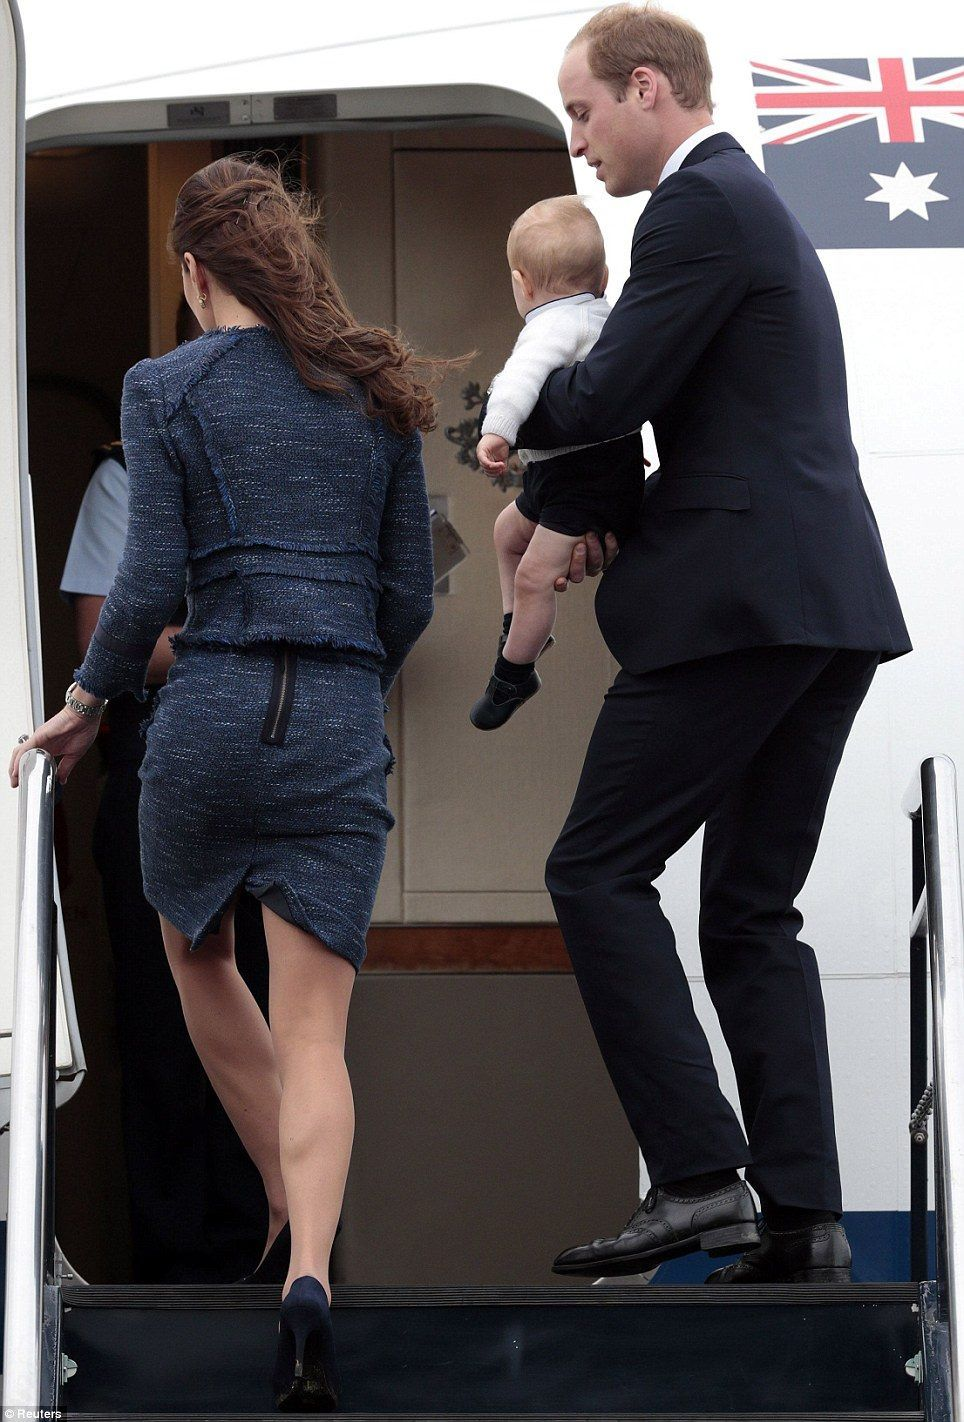 On Wednesday afternoon (April 16, 2014), the Duke and Duchess of Cambridge, along with Prince George, departed Wellington, New Zealand on a Royal Australian Air Force plane for bound for Sydney, Australia. The family spent 9 days touring New Zealand and will now spend 10 days visiting Australia.  April 16, 2014.